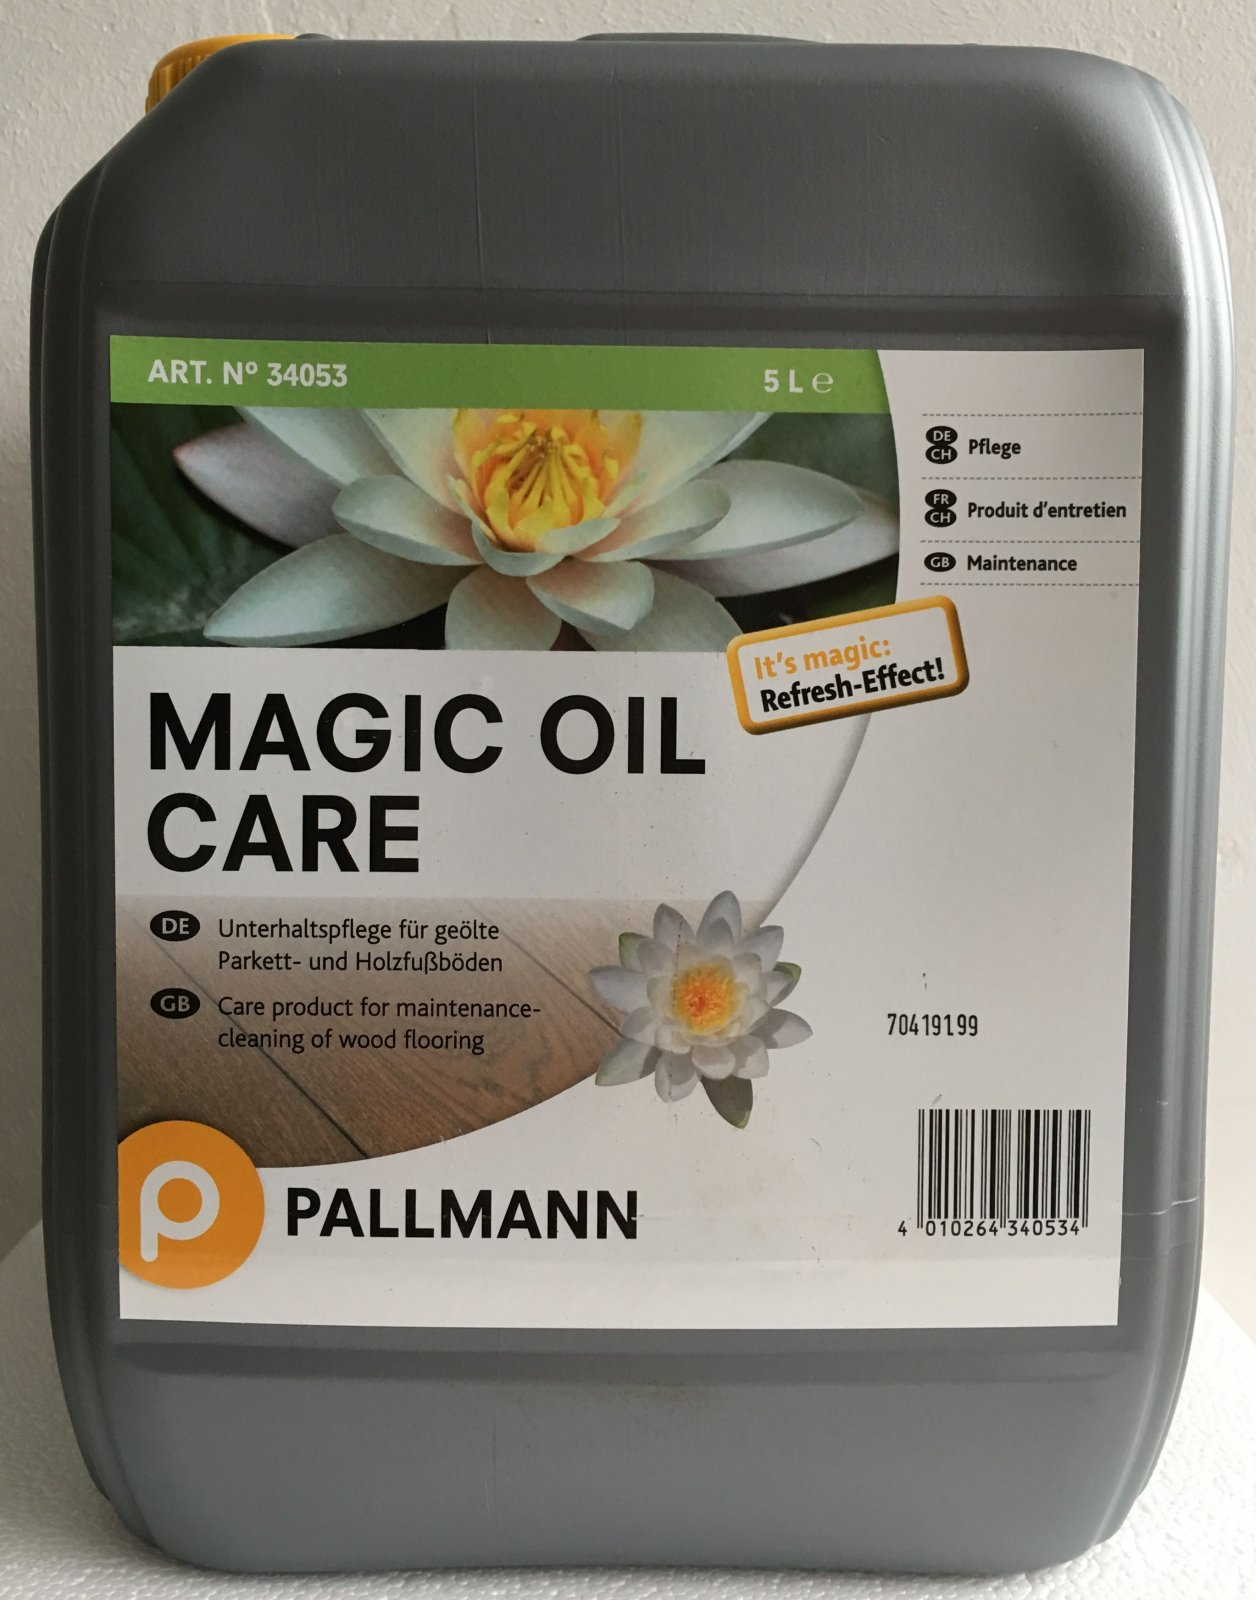 pallmann magic oil care pflegemittel 5 l parkett holzfu bodenpflegemittel 4010264340534 ebay. Black Bedroom Furniture Sets. Home Design Ideas